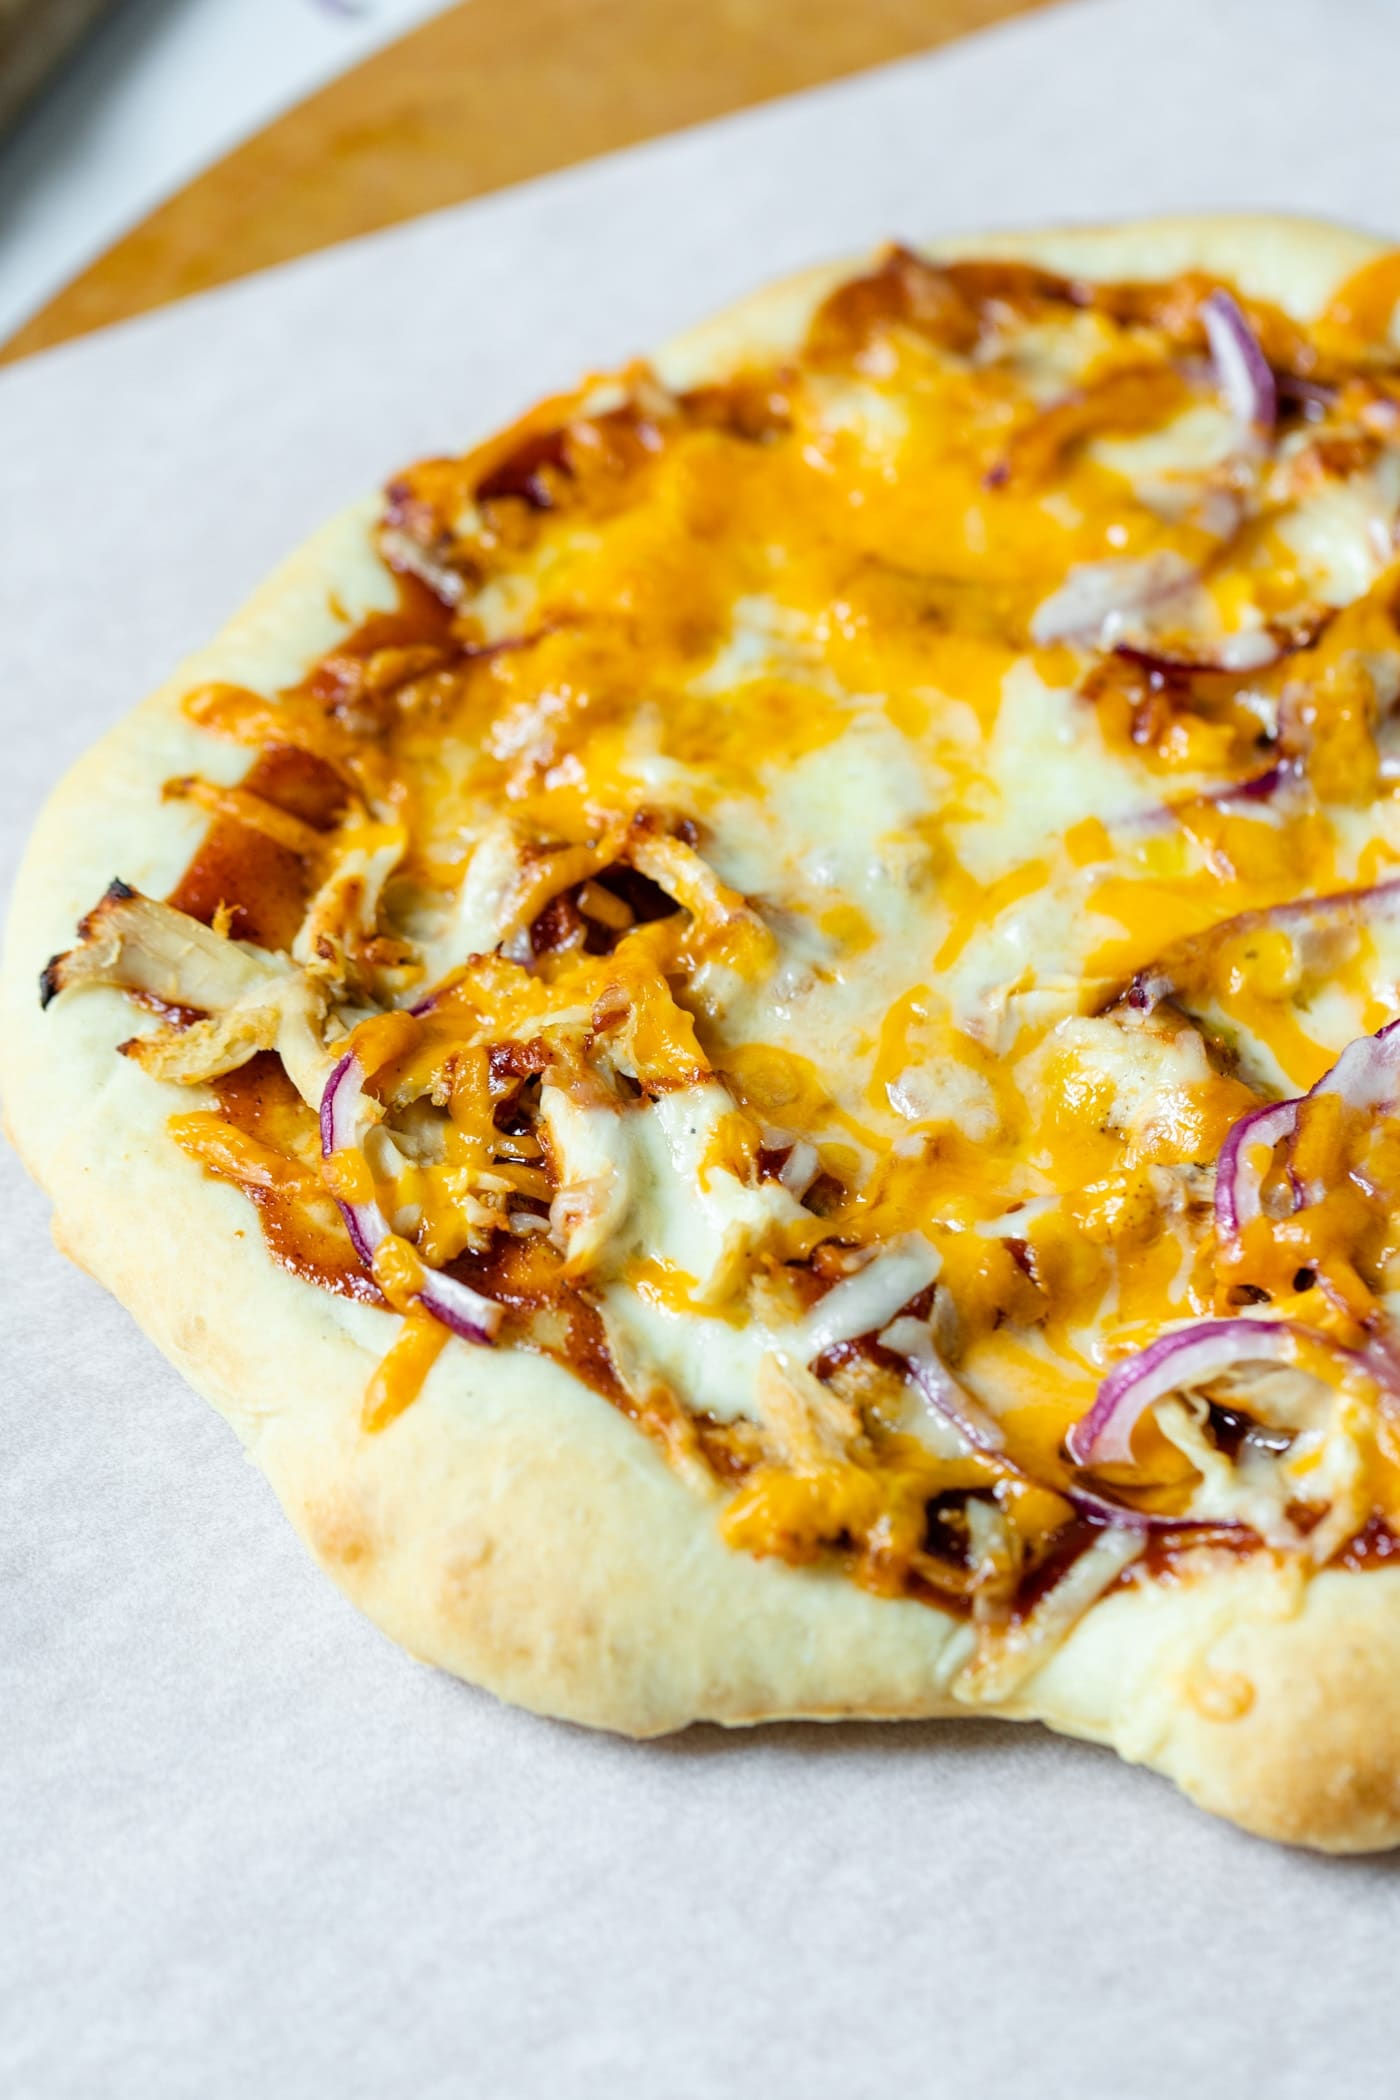 Homemade barbecue chicken pizza made of chicken, cheese, barbecue sauce and red onion on a homemade crust on a piece of white parchment and pizza board on a marble surface